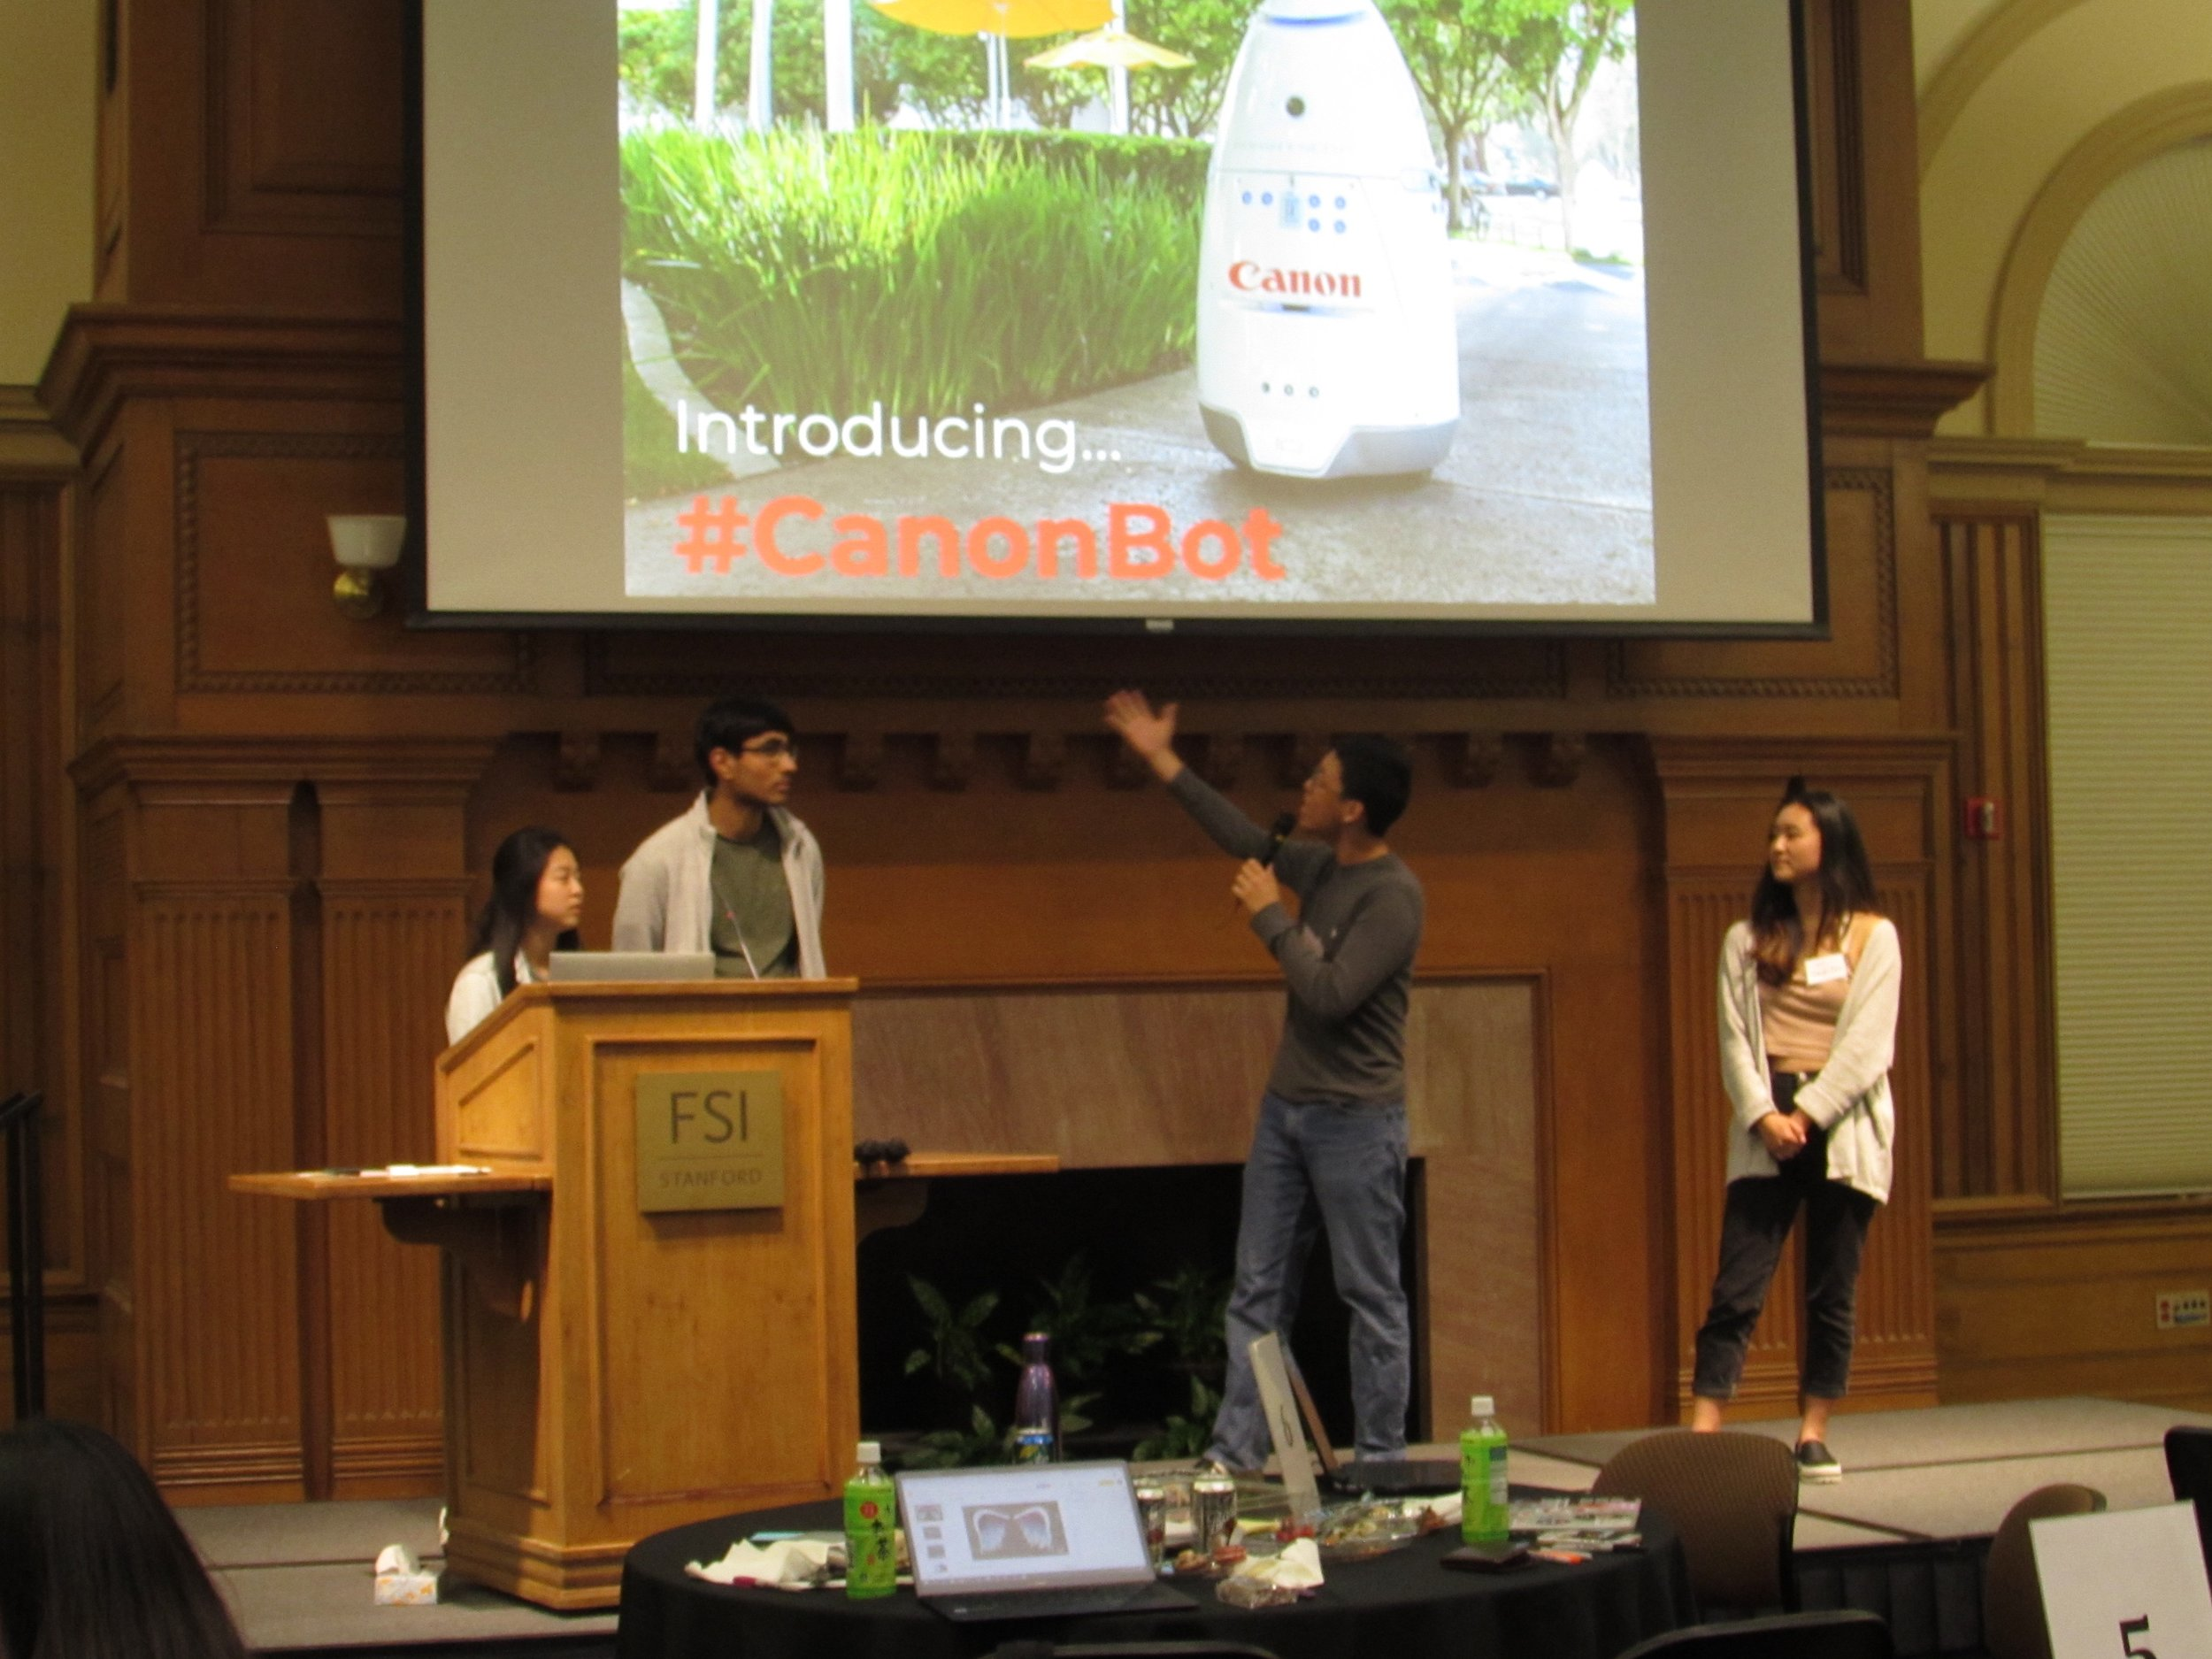 Canon Ideathon 2019 — Stanford Silicon Valley - New Japan